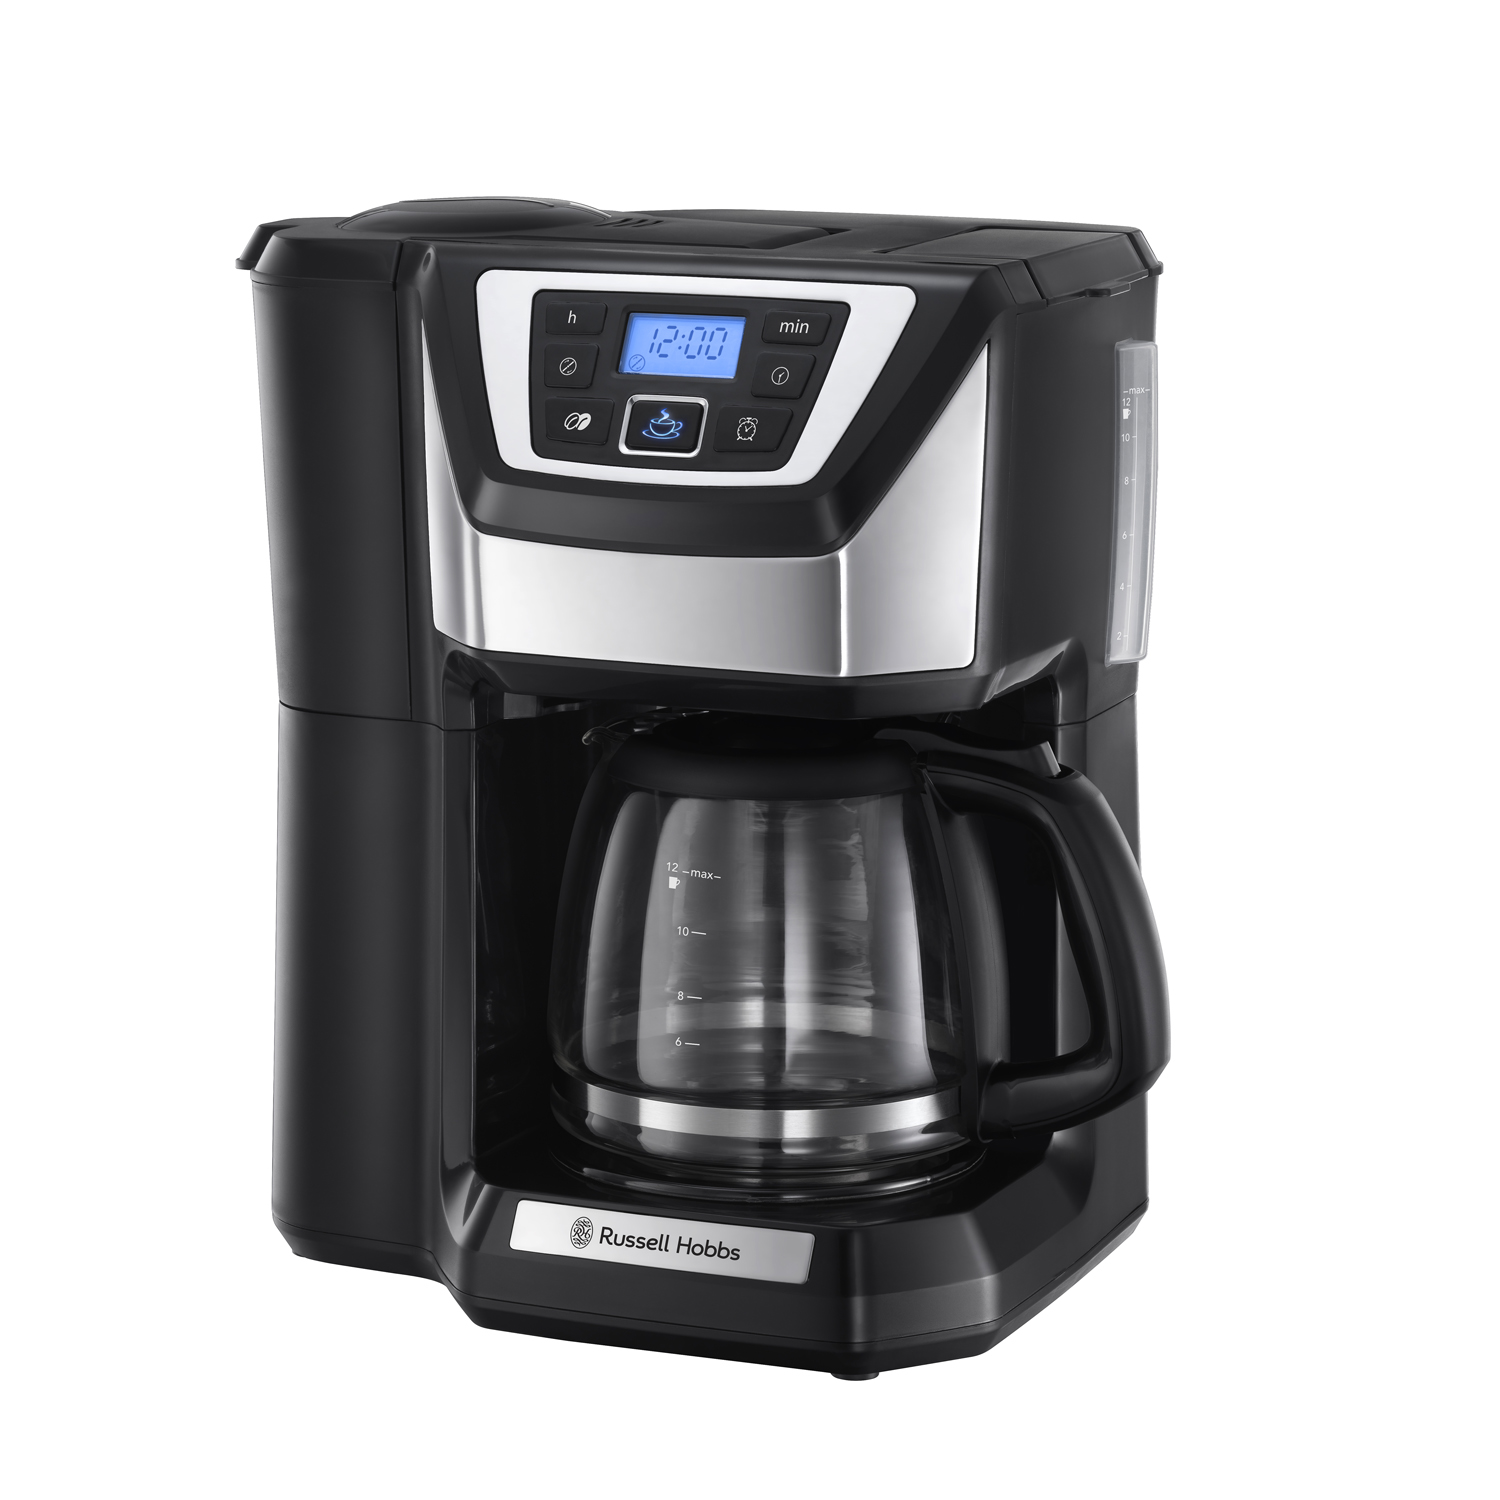 Russell Hobbs Chester Grind & Brew Coffee Maker – Black